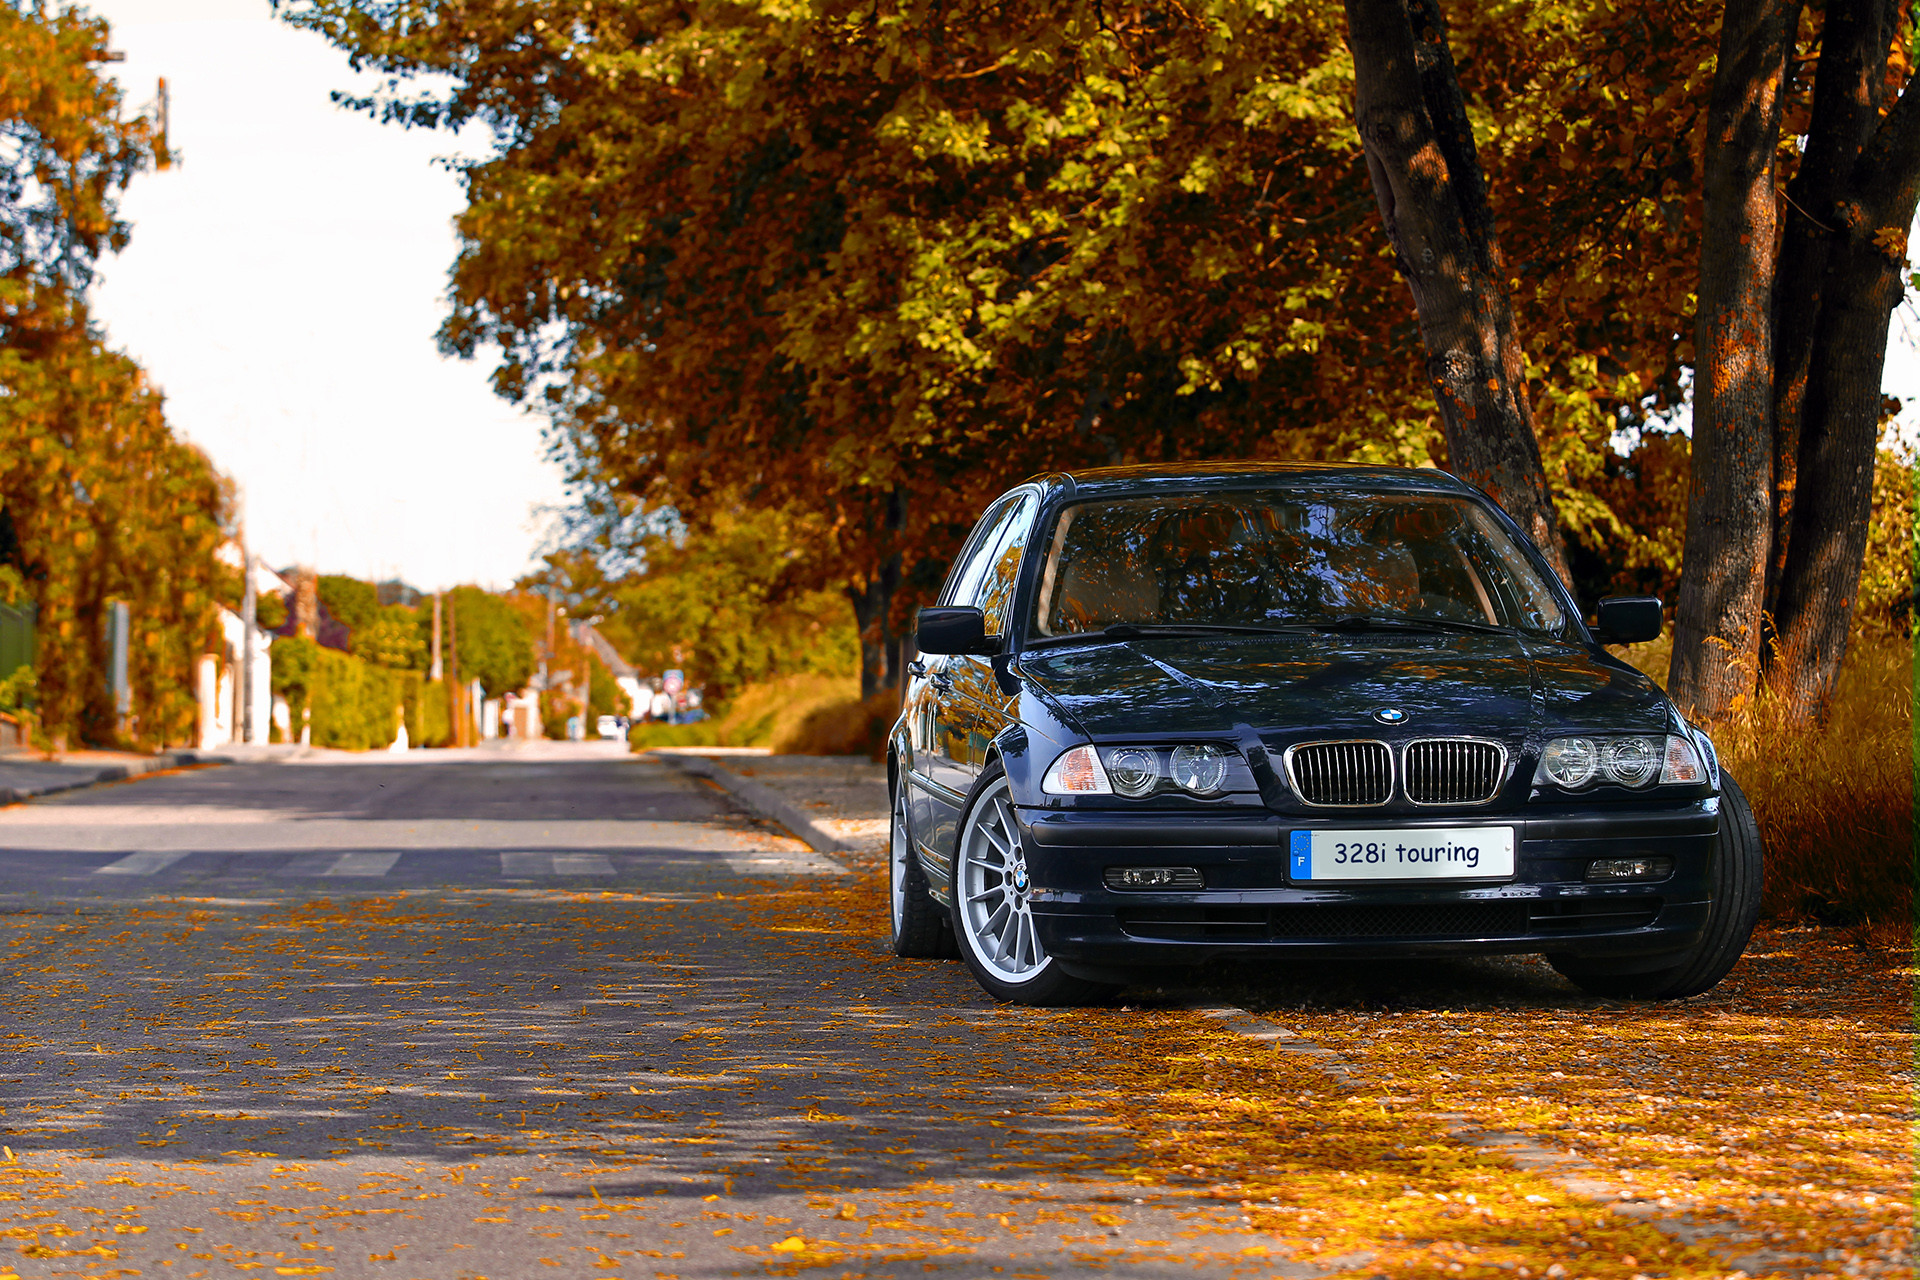 bmw 328i touring - été indien - Indian summer effect by Nik collection